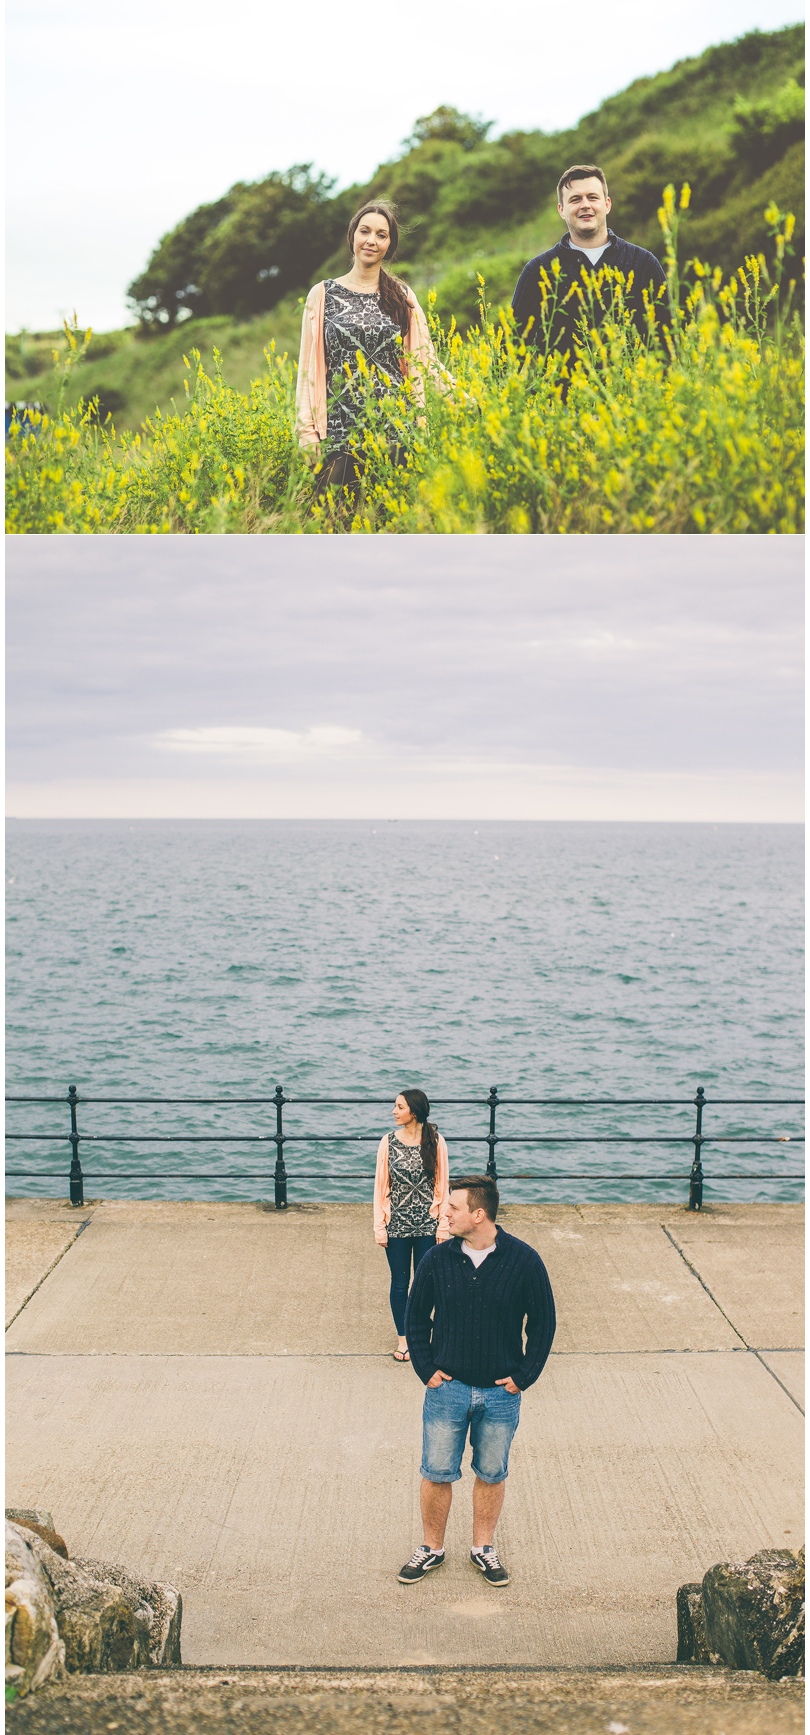 Scarborough York Yorkshire Wedding Photographer Yorkshire Engagement Pre Wedding Shoot North Bay Scarborough Yorkshire